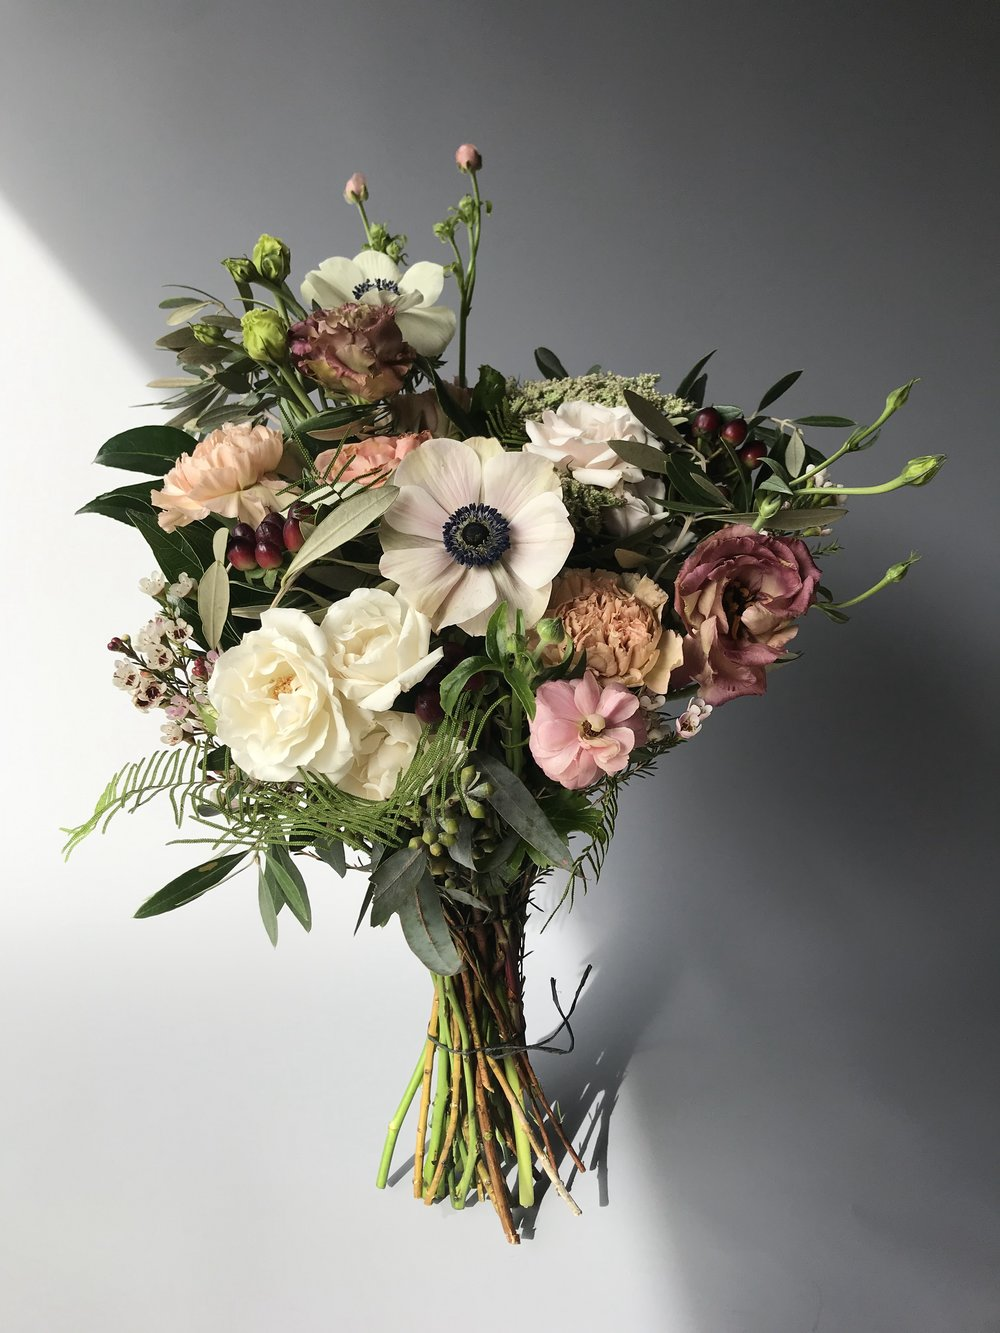 ADMIN PROFESSIONAL'S DAY IS 4/24/19! - Send them a token of appreciation from Nigella SF.We are a full service botanical boutique located in the lobby ofOne Market Plaza in San Francisco. Our impeccably styled designs can be found throughout the Bay Area in homes, offices, hotels, restaurants and events of all sizes.Looking for a more customized option?Give us a call. 415-933-9309